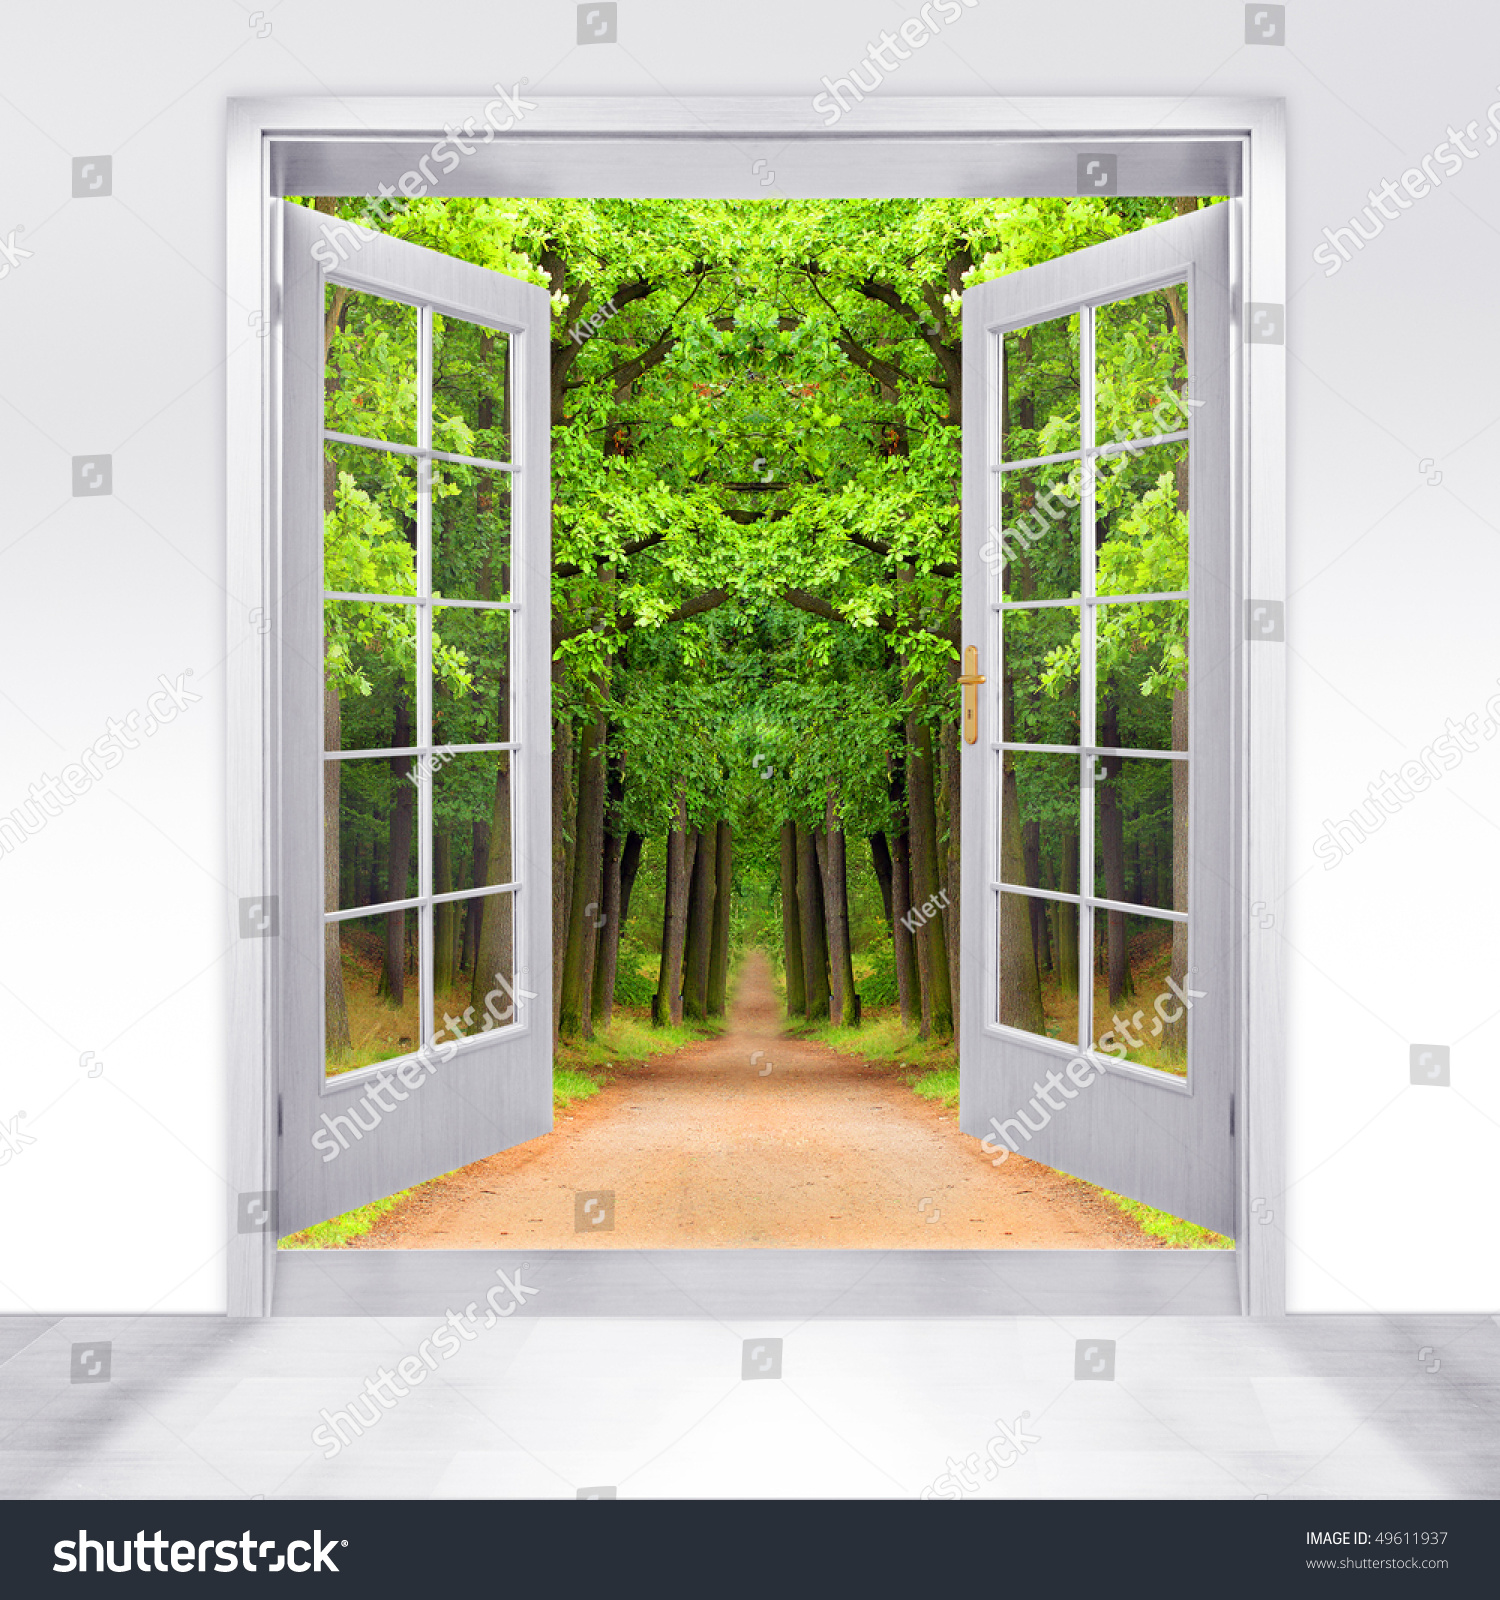 Opened door to early morning in green oak alley - conceptual image - environmental business metaphor  sc 1 st  Shutterstock & Opened Door Early Morning Green Oak Stock Photo 49611937 ... pezcame.com